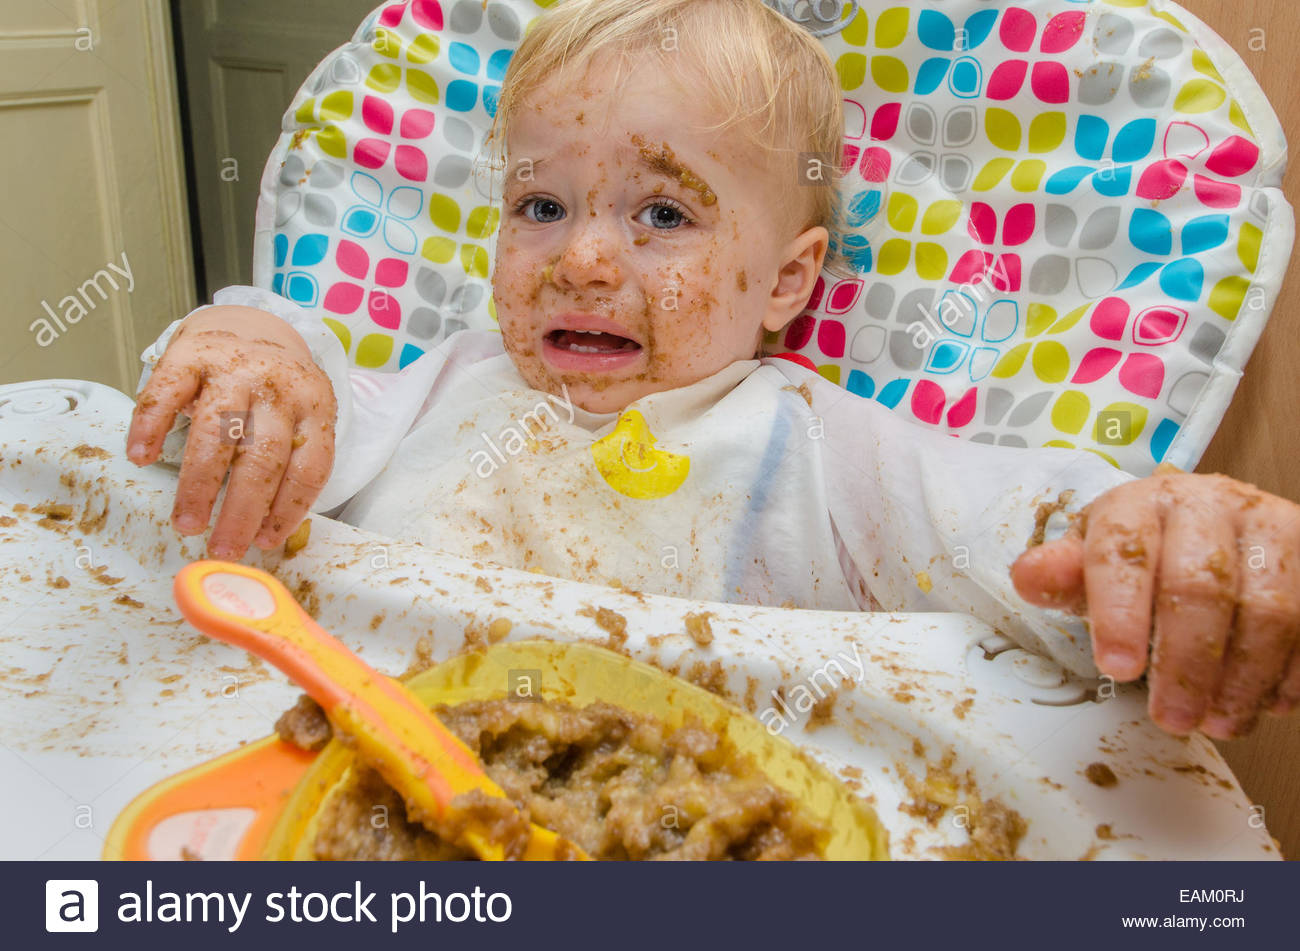 An 18-month old boy in a high chair eats a meal of pureed food in a very messy way - Stock Image